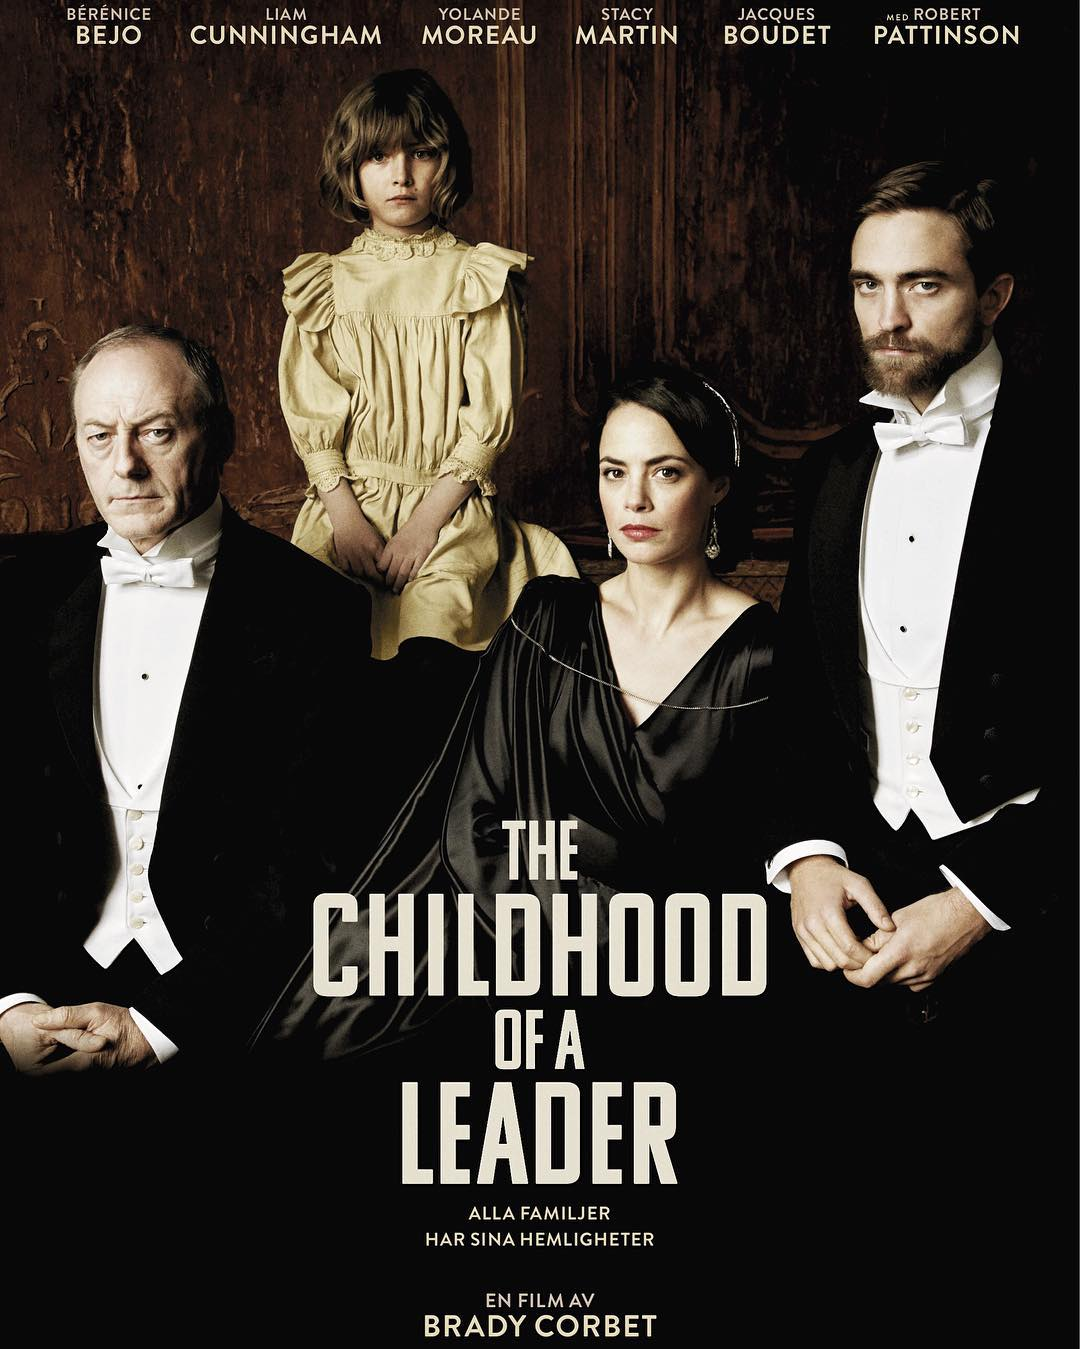 The Childhood of a Leader 2015 - Full (HDRIP)